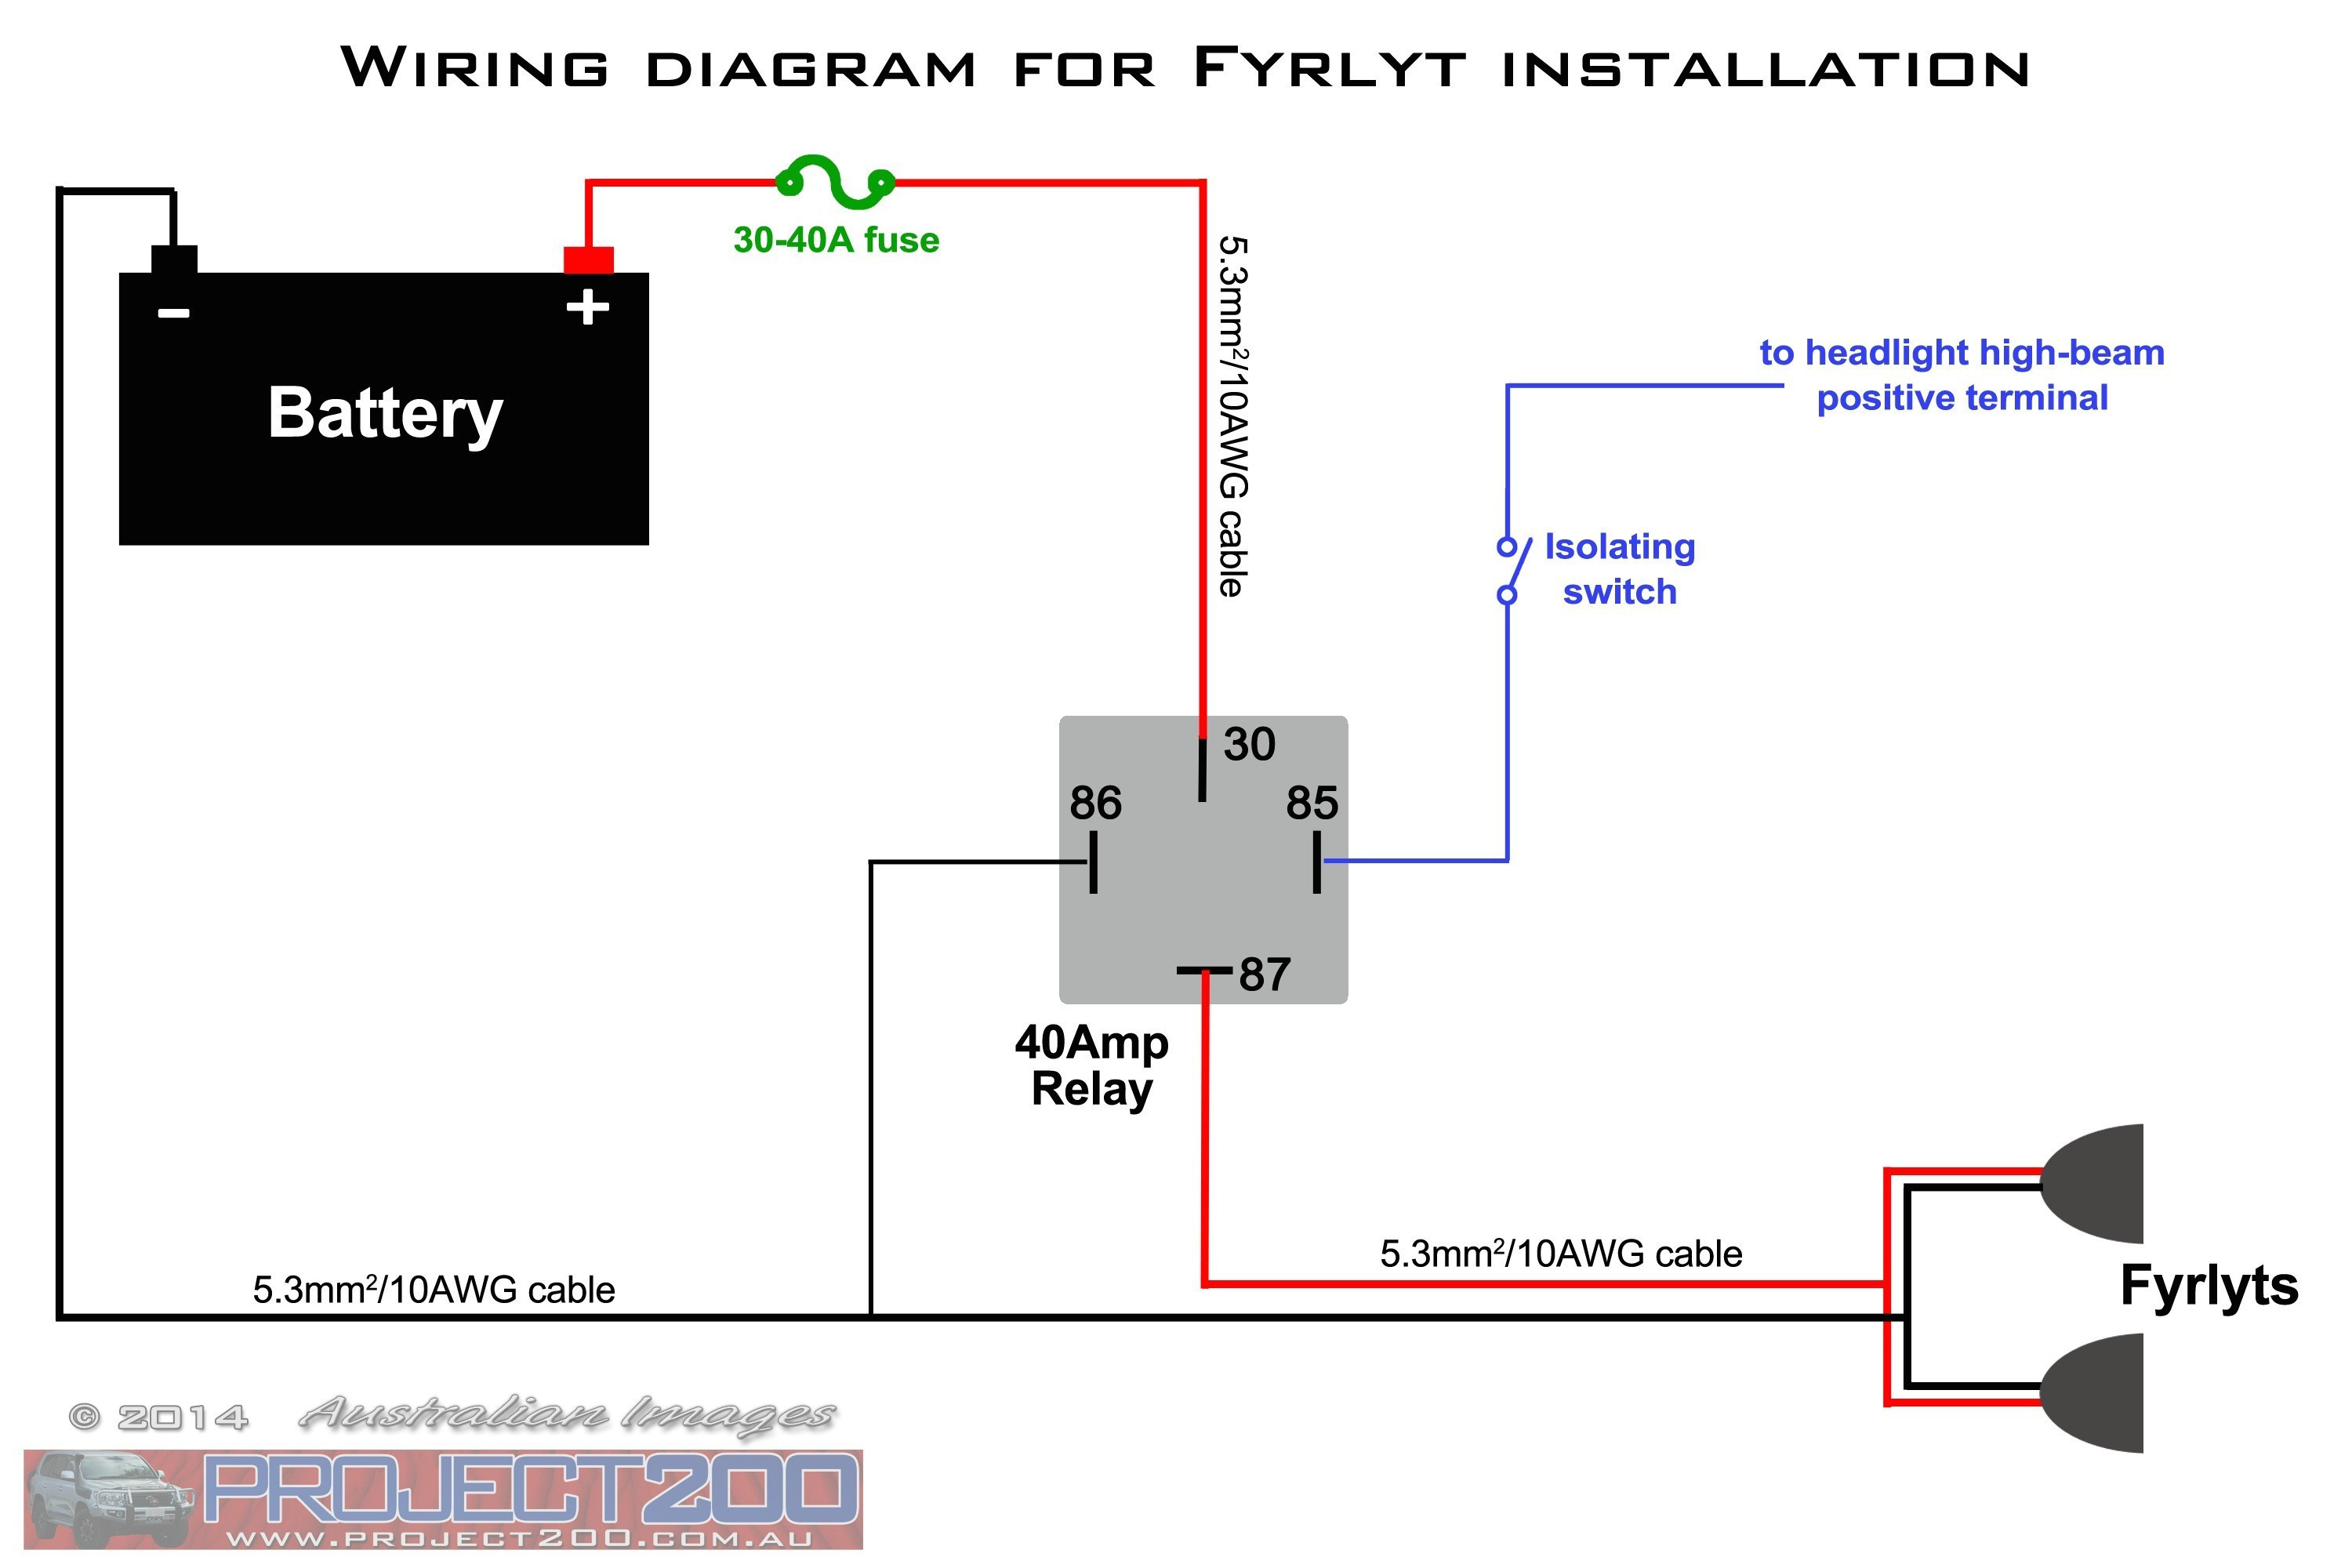 12v relay wiring diagram spotlights Collection-12v Relay Wiring Diagram Spotlights Save Wiring Diagram Builder Archives Ipphil New Wiring Diagram for 3-p